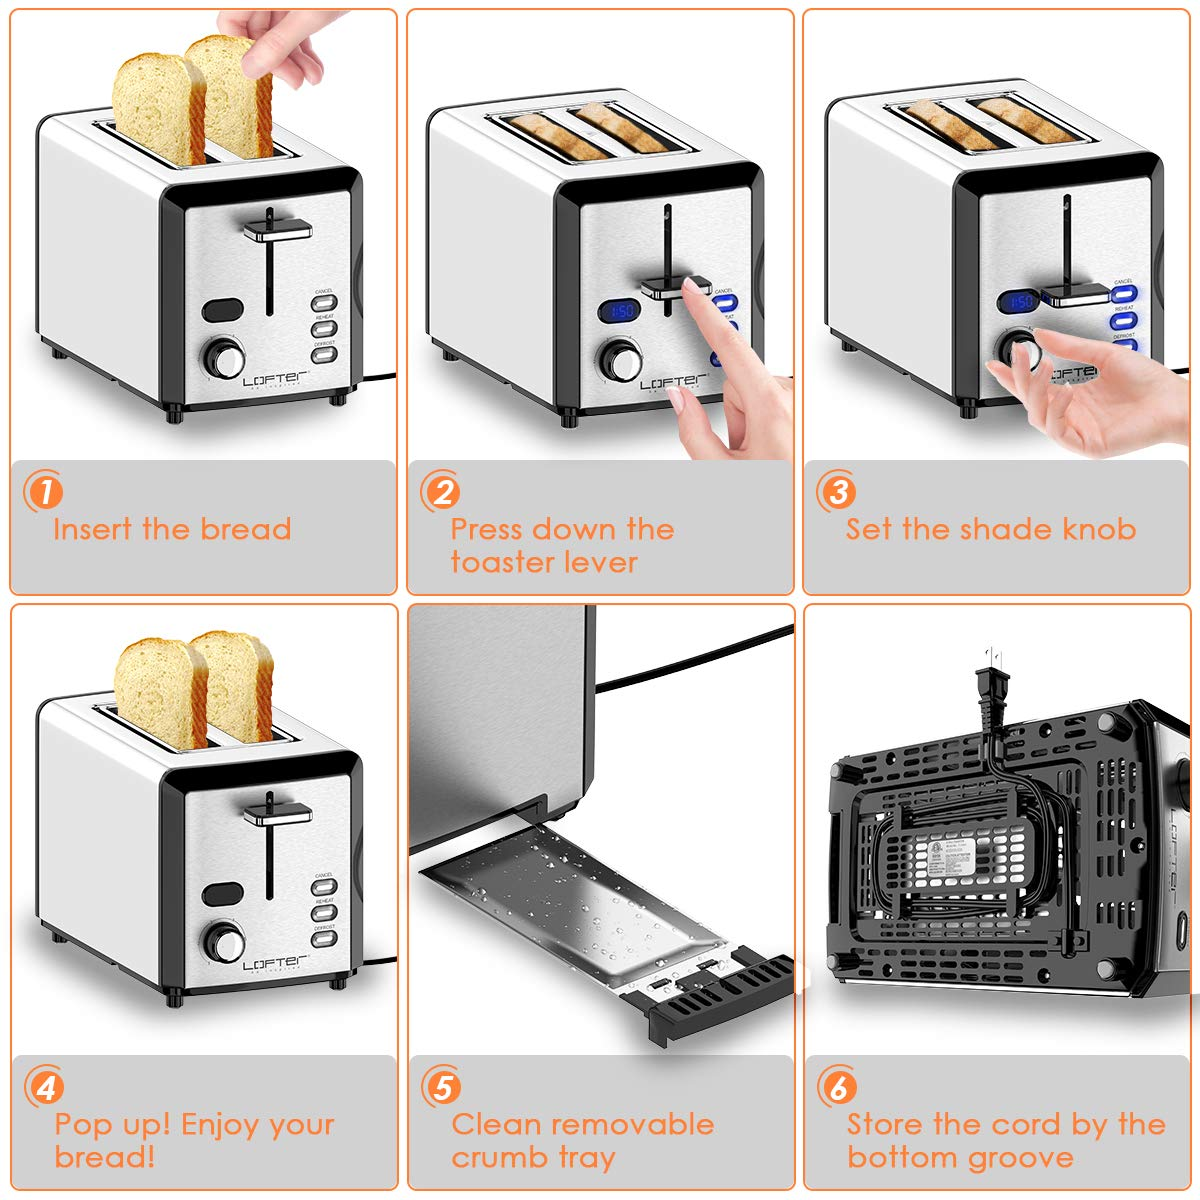 2 Slice Toaster, LOFTER Mirror Stainless Steel Toaster Extra Wide Slots Toasters with 6 Shade Settings, Compact LED Display with Removable Crumb Tray, Defrost/Reheat/Cancel, High Lift Lever, 800W by LOFTER (Image #4)